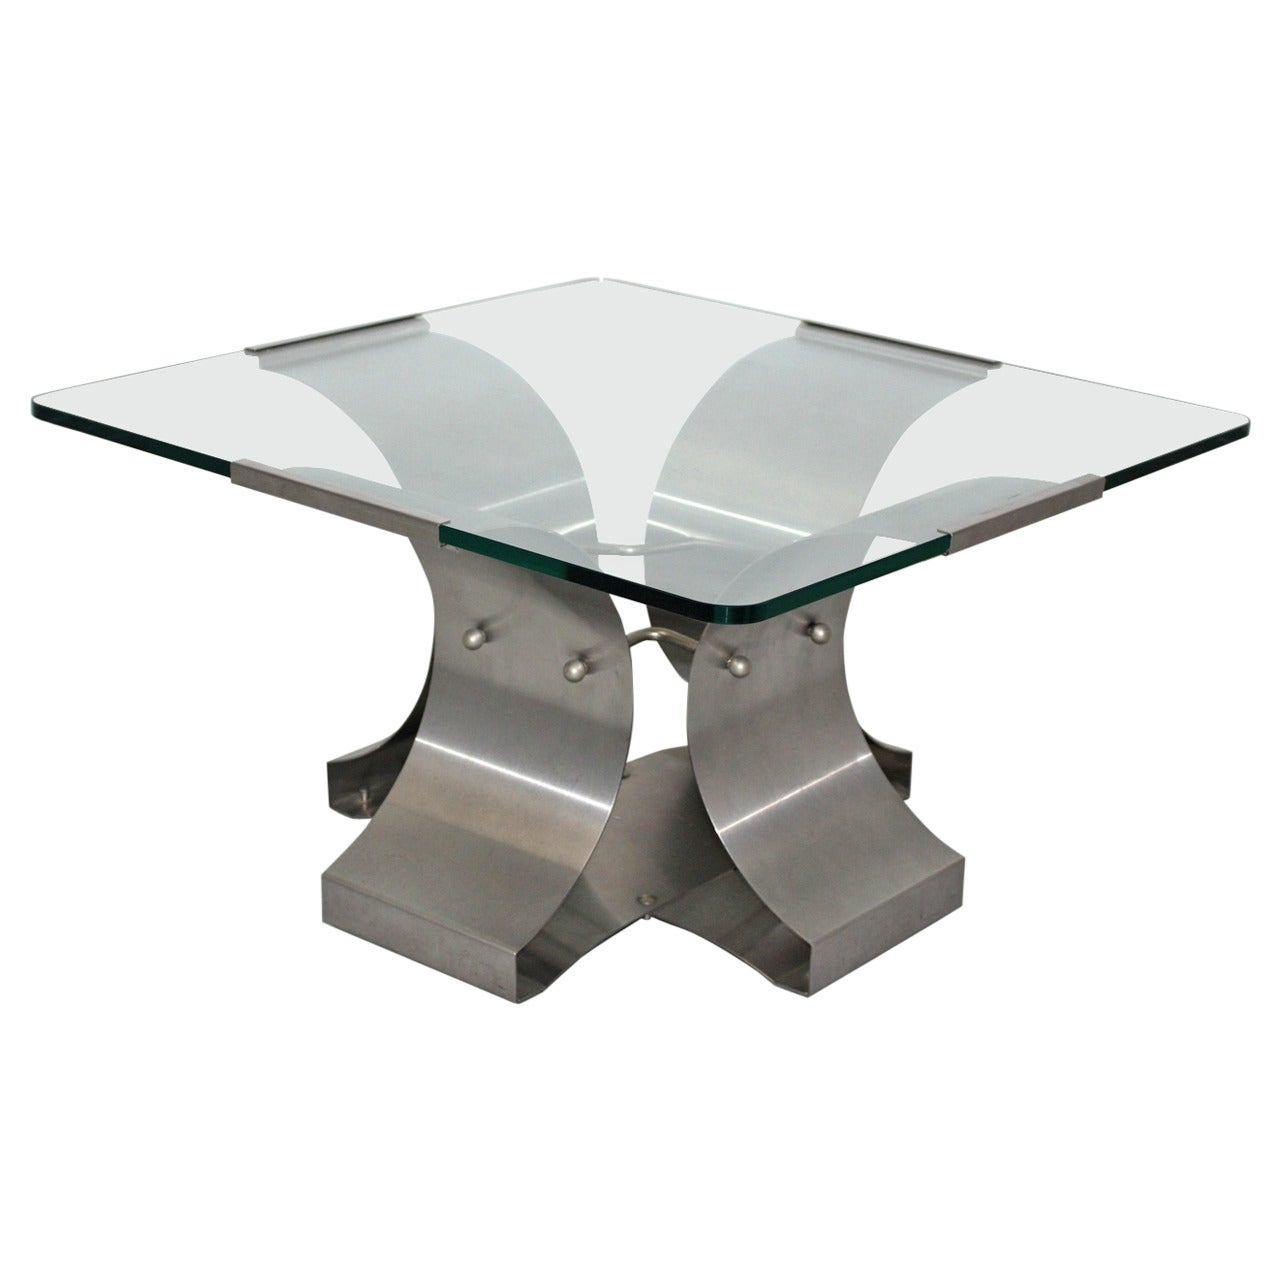 Mid-Century Modern Steel Vintage Coffee Table by François Monnet France 1970s